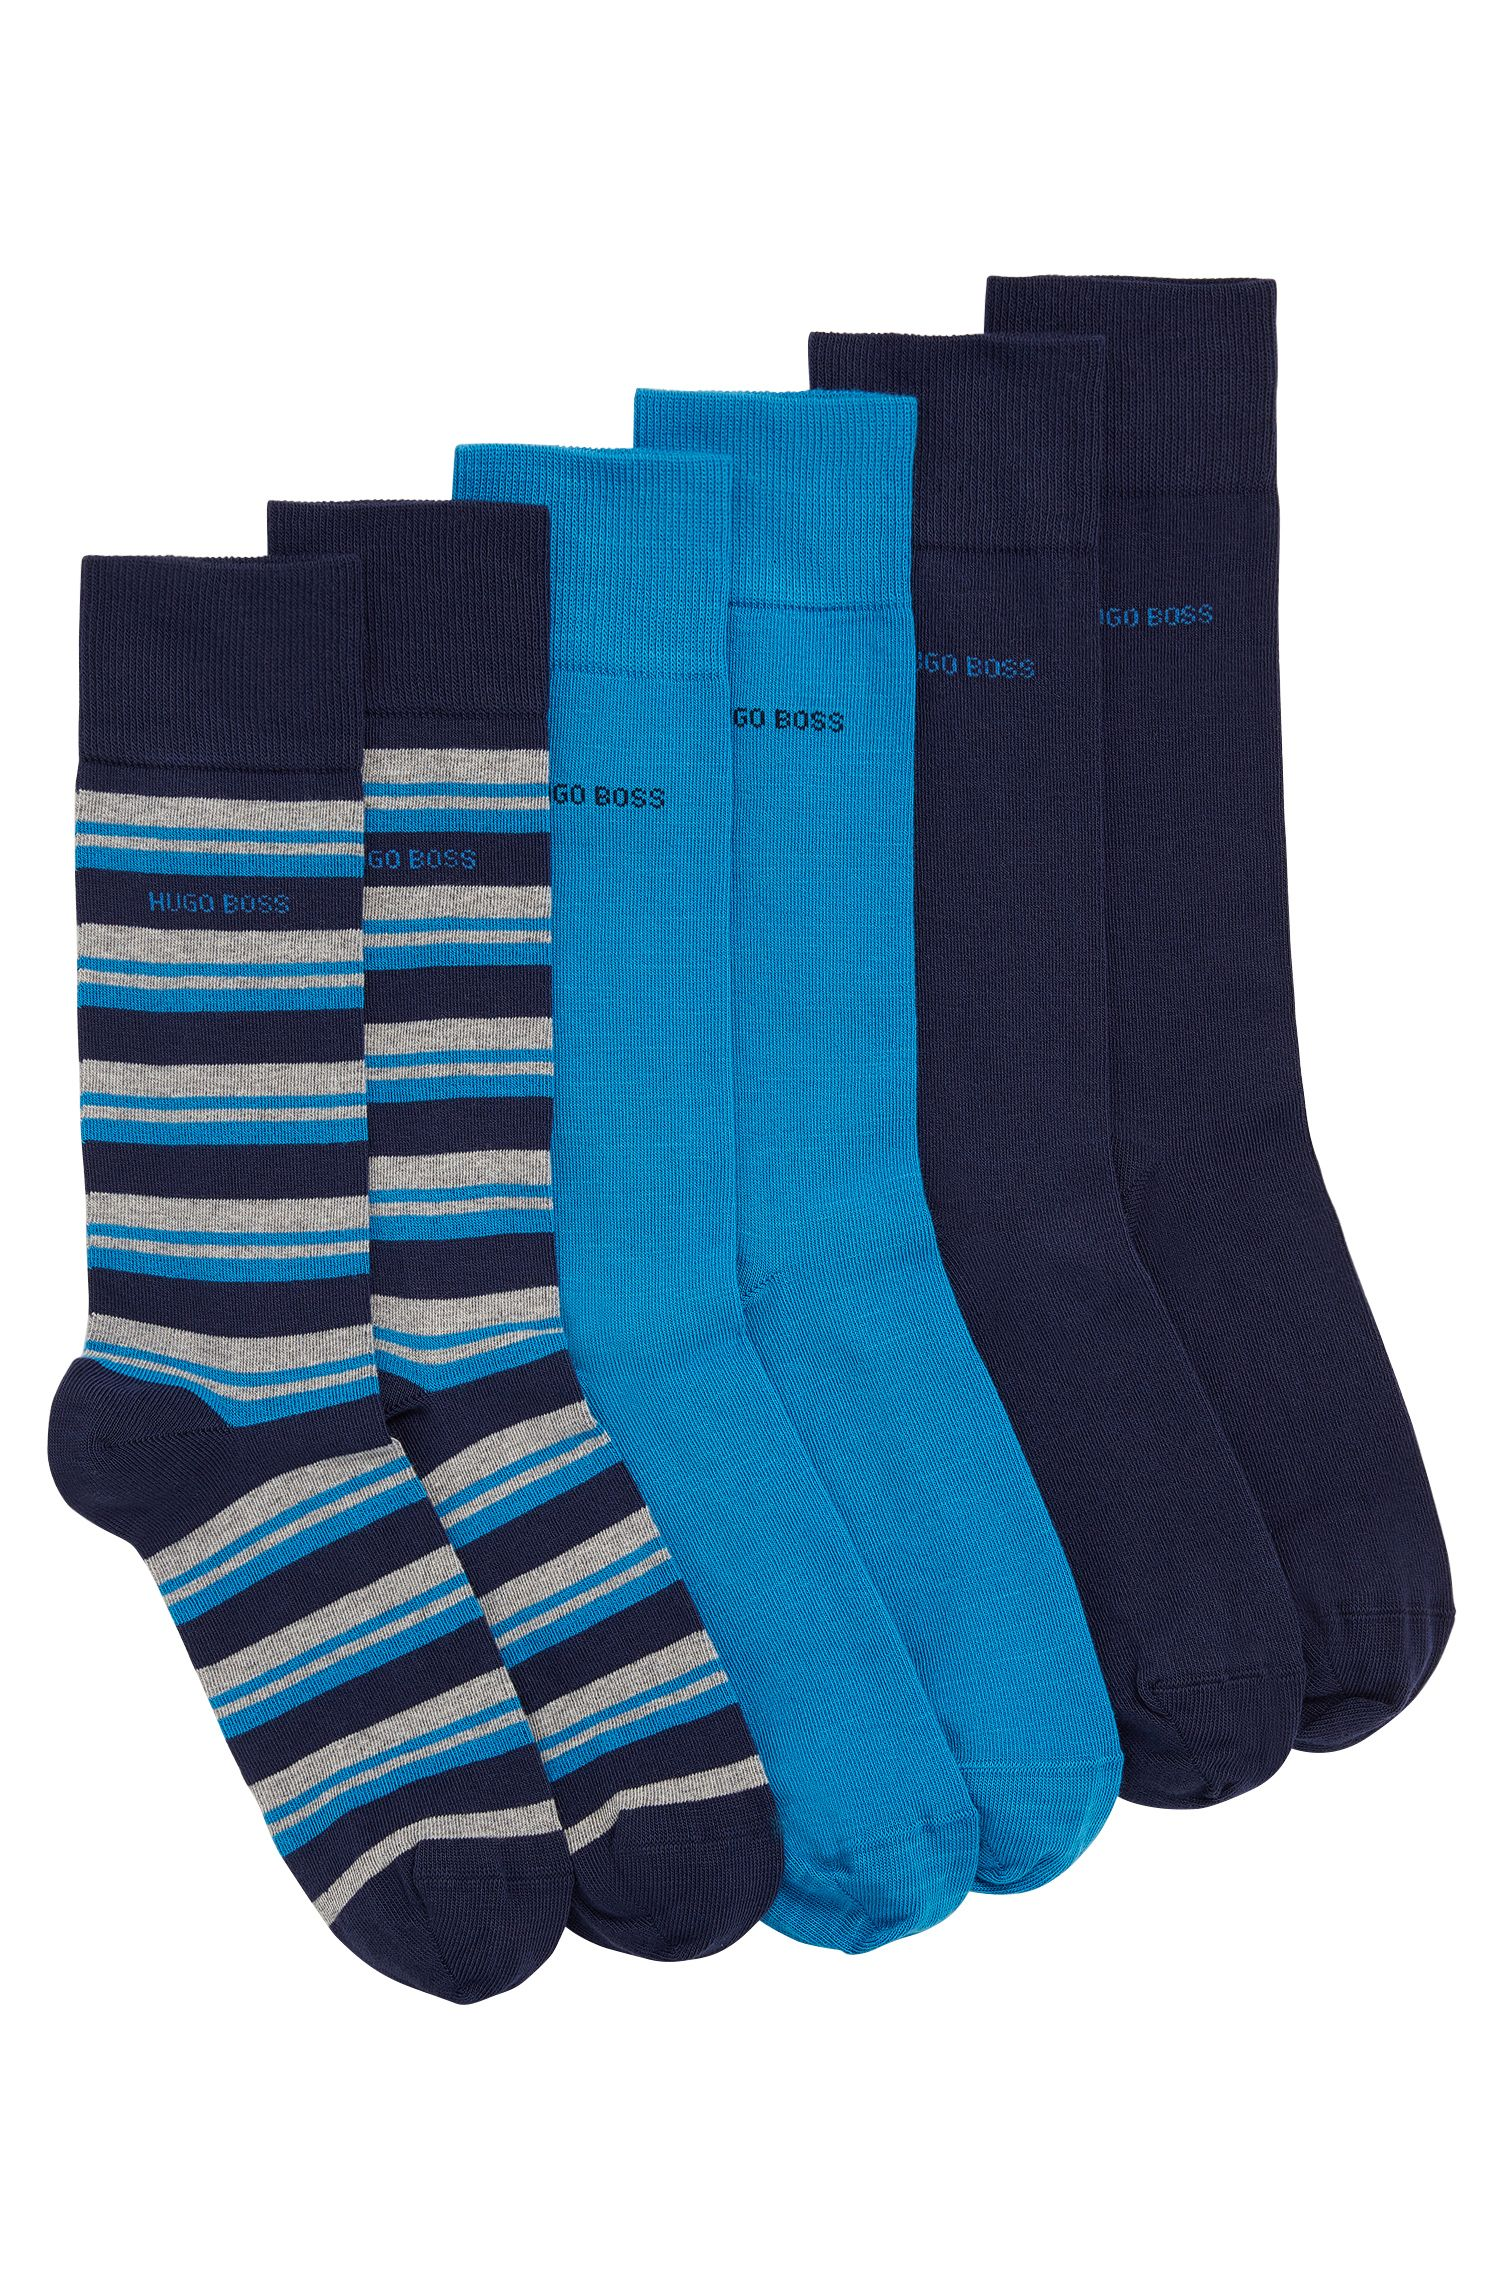 Three-pack of regular-length socks in combed cotton blend